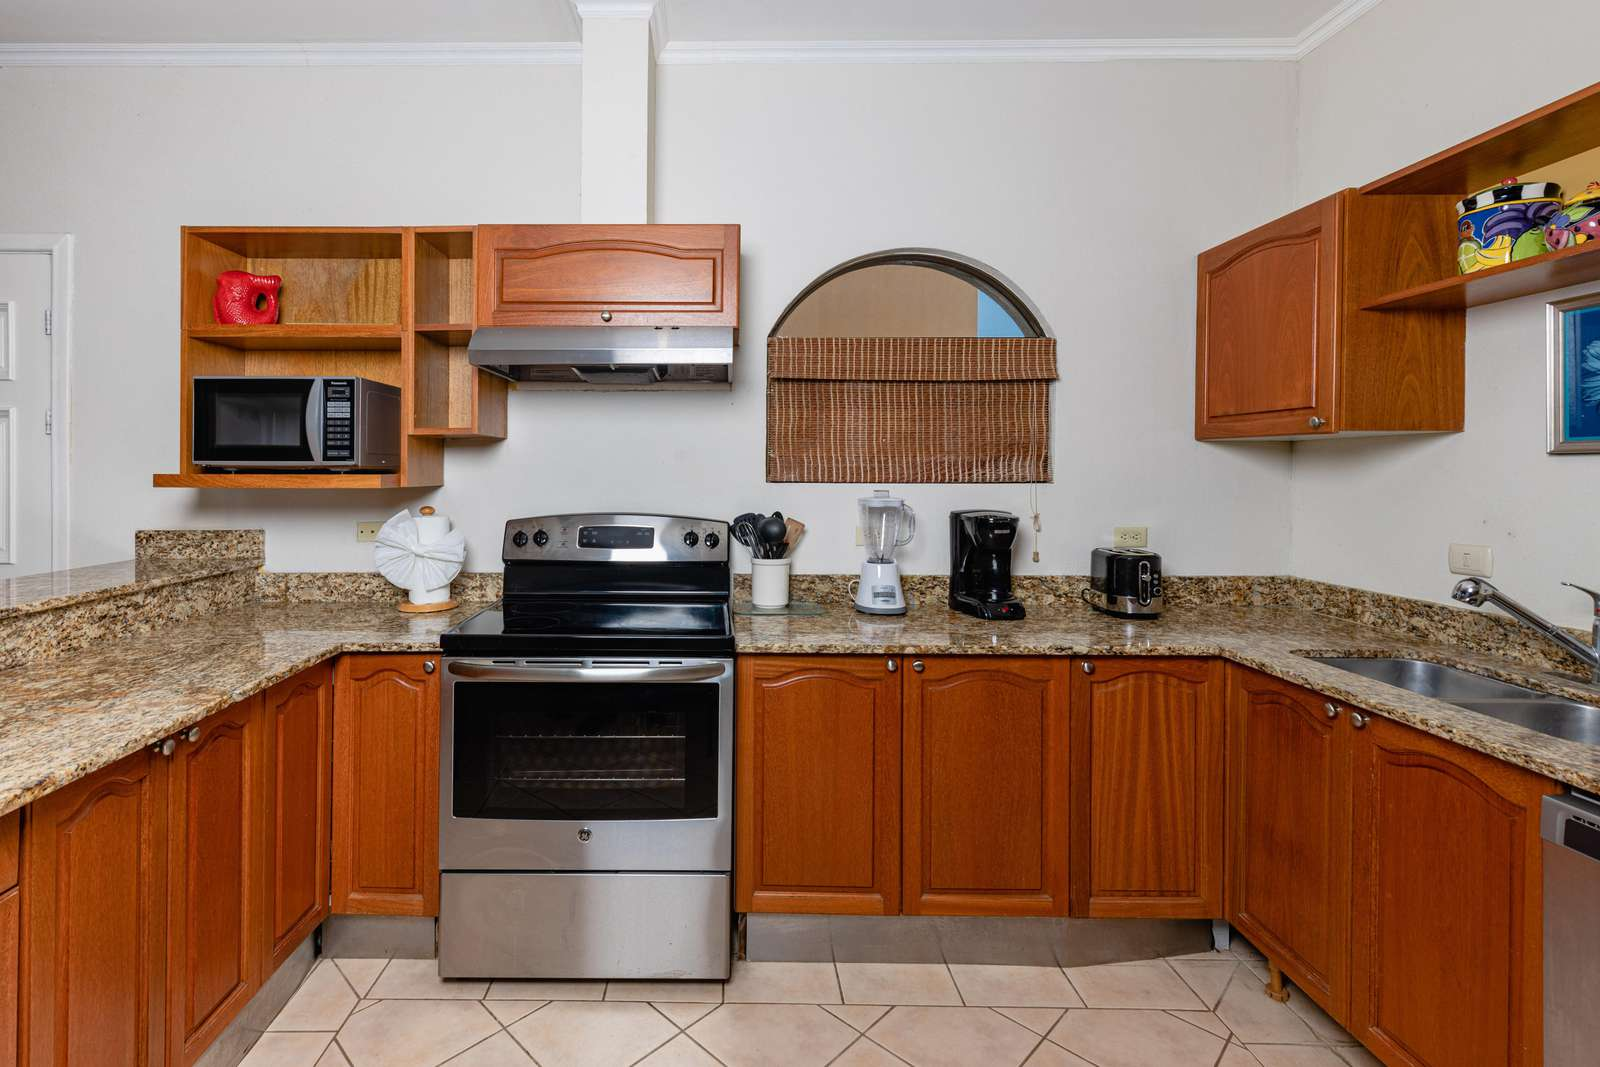 Gourmet kitchen, fully stocked, stainless steel appliances